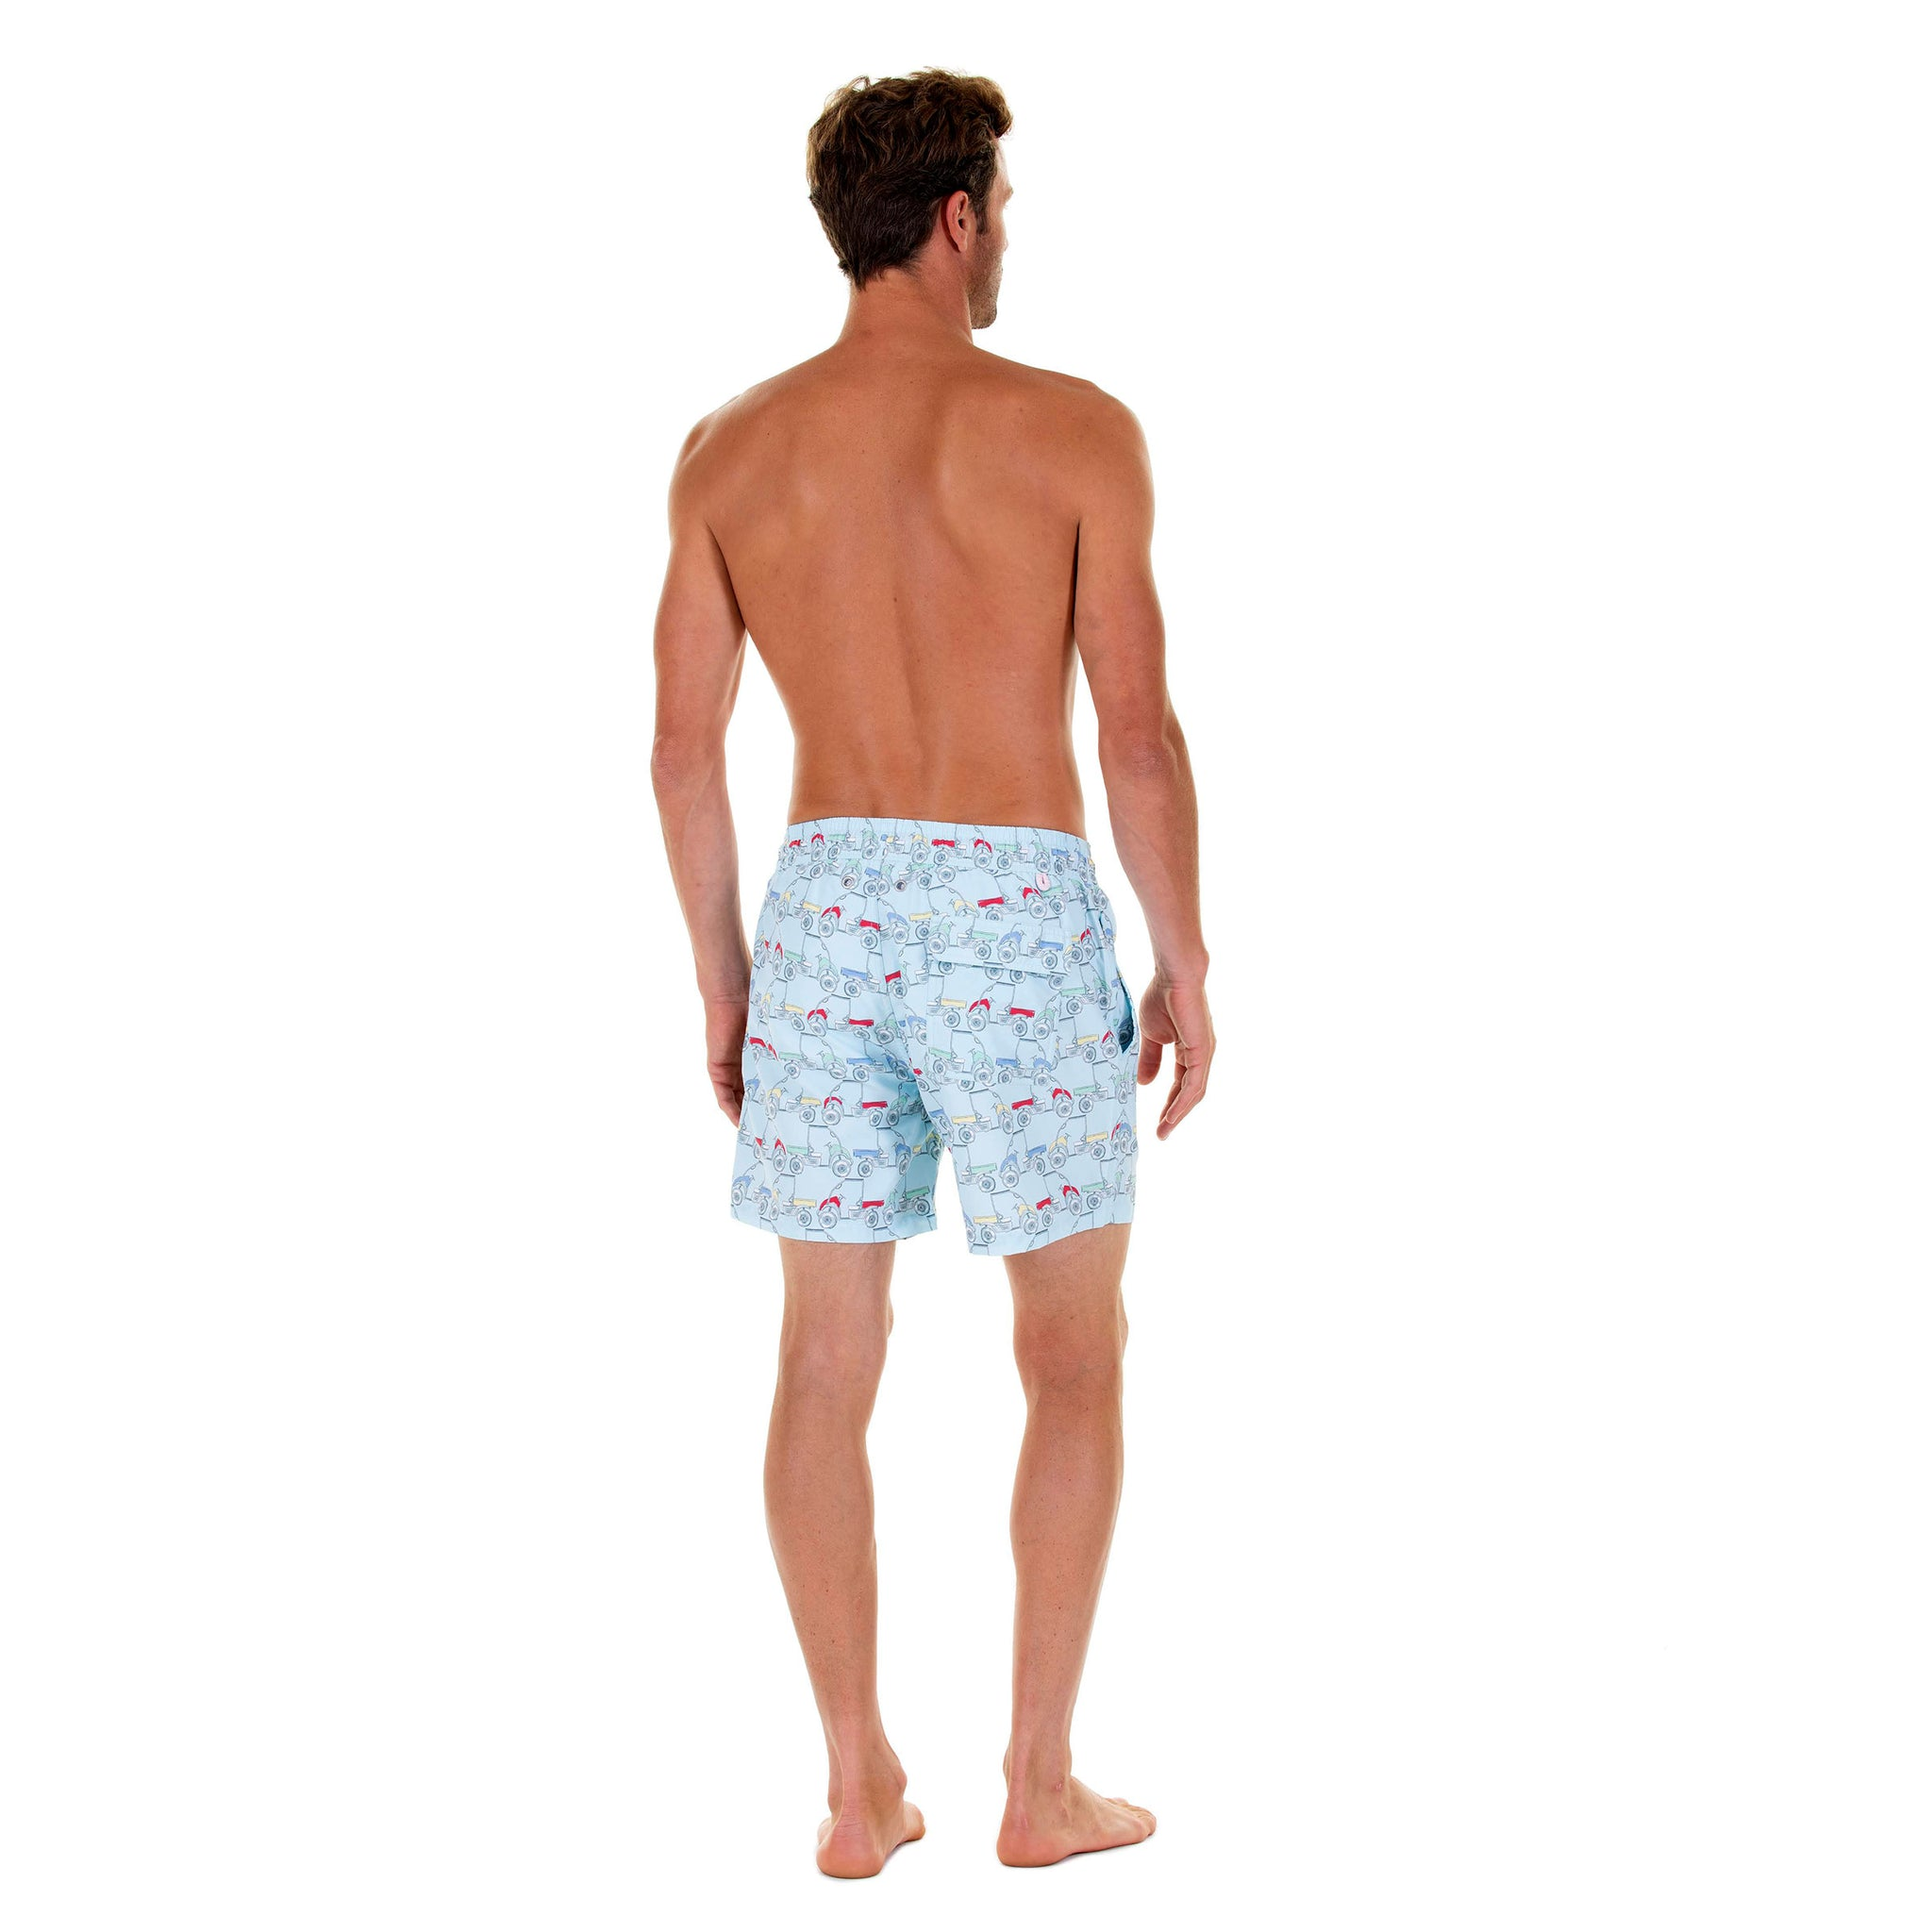 Aluys boutique Mens Swim Trunks Quick Dry Colorful Leaves Printed Holiday Beach Board Shorts with Mesh Lining